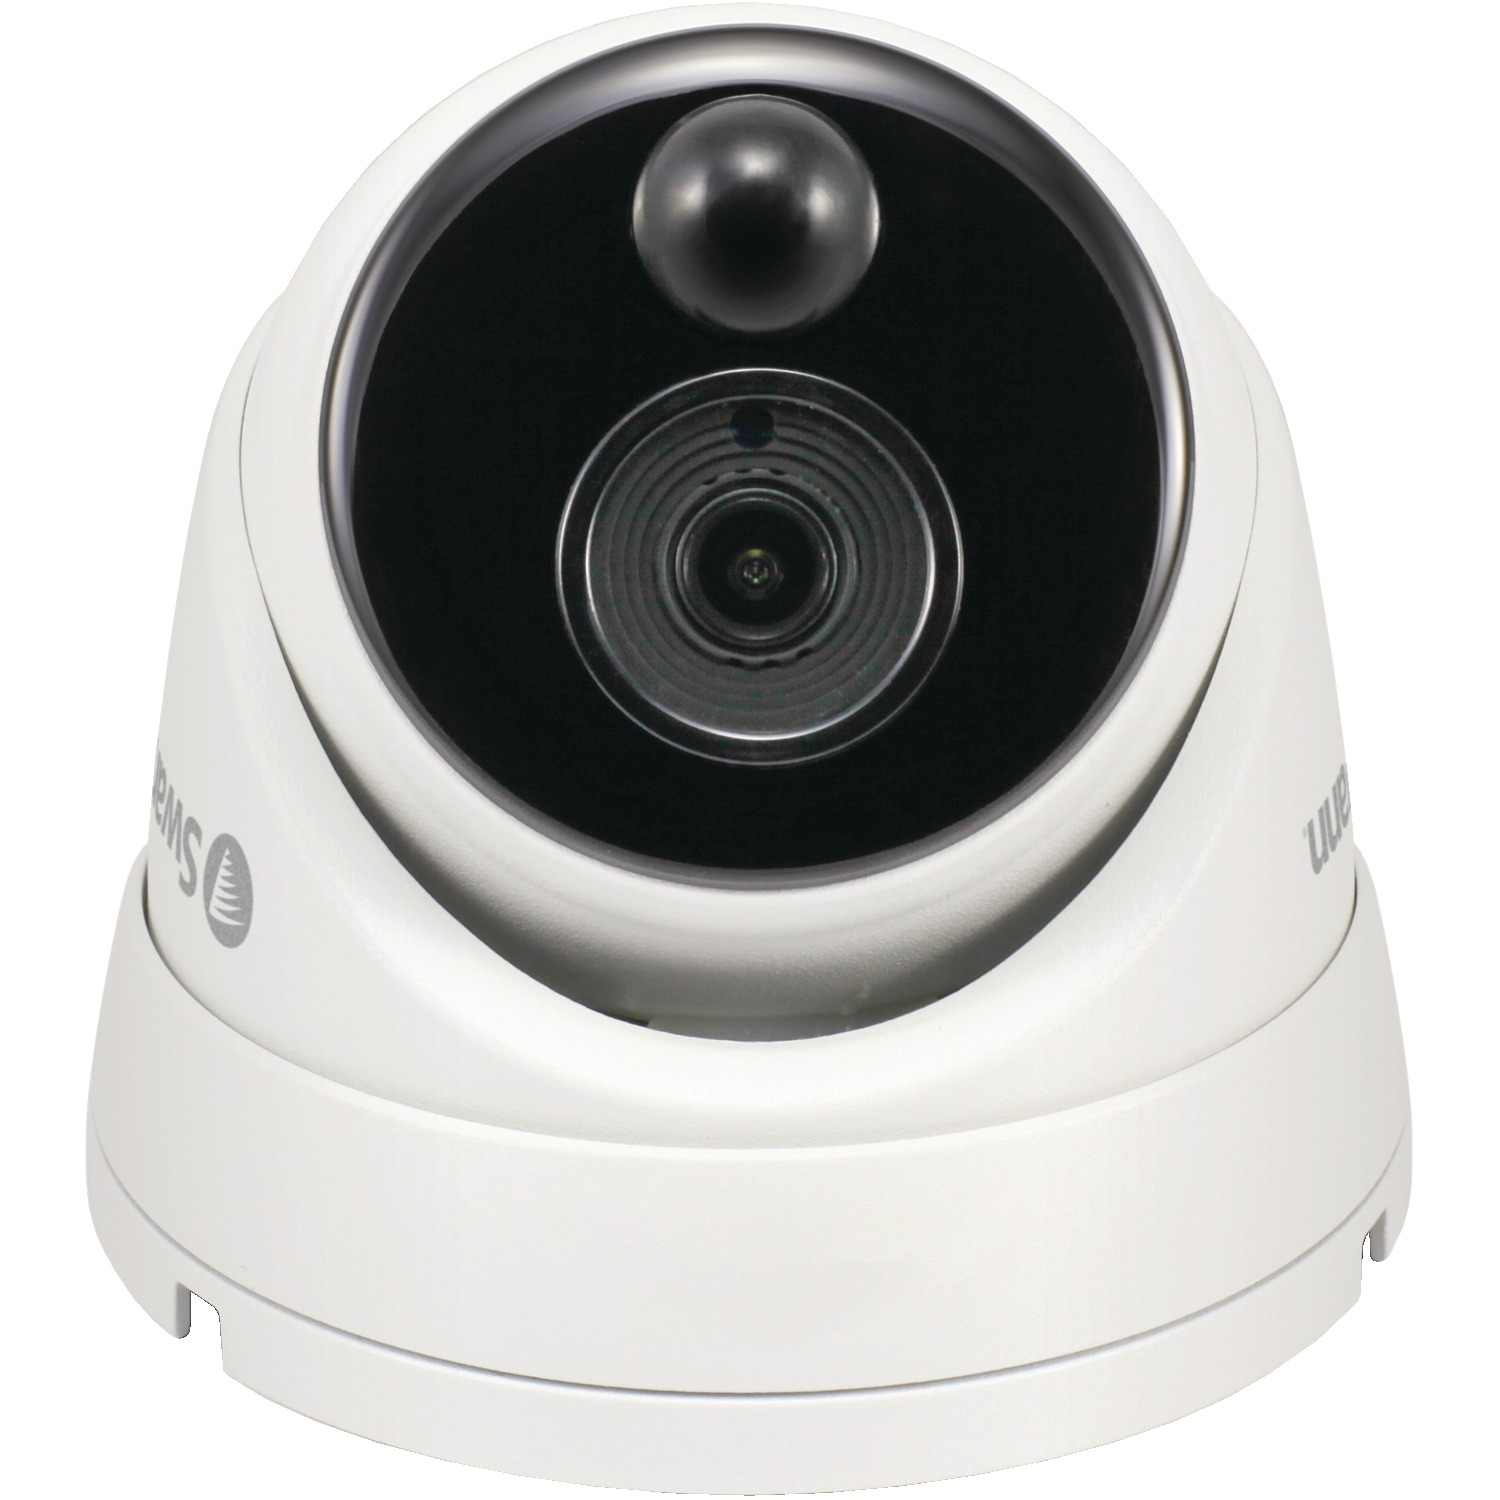 Swann SWPRO-1080MSD-US PRO-1080MSB 1080p 2.1-Megapixel PIR Add-On Dome Camera